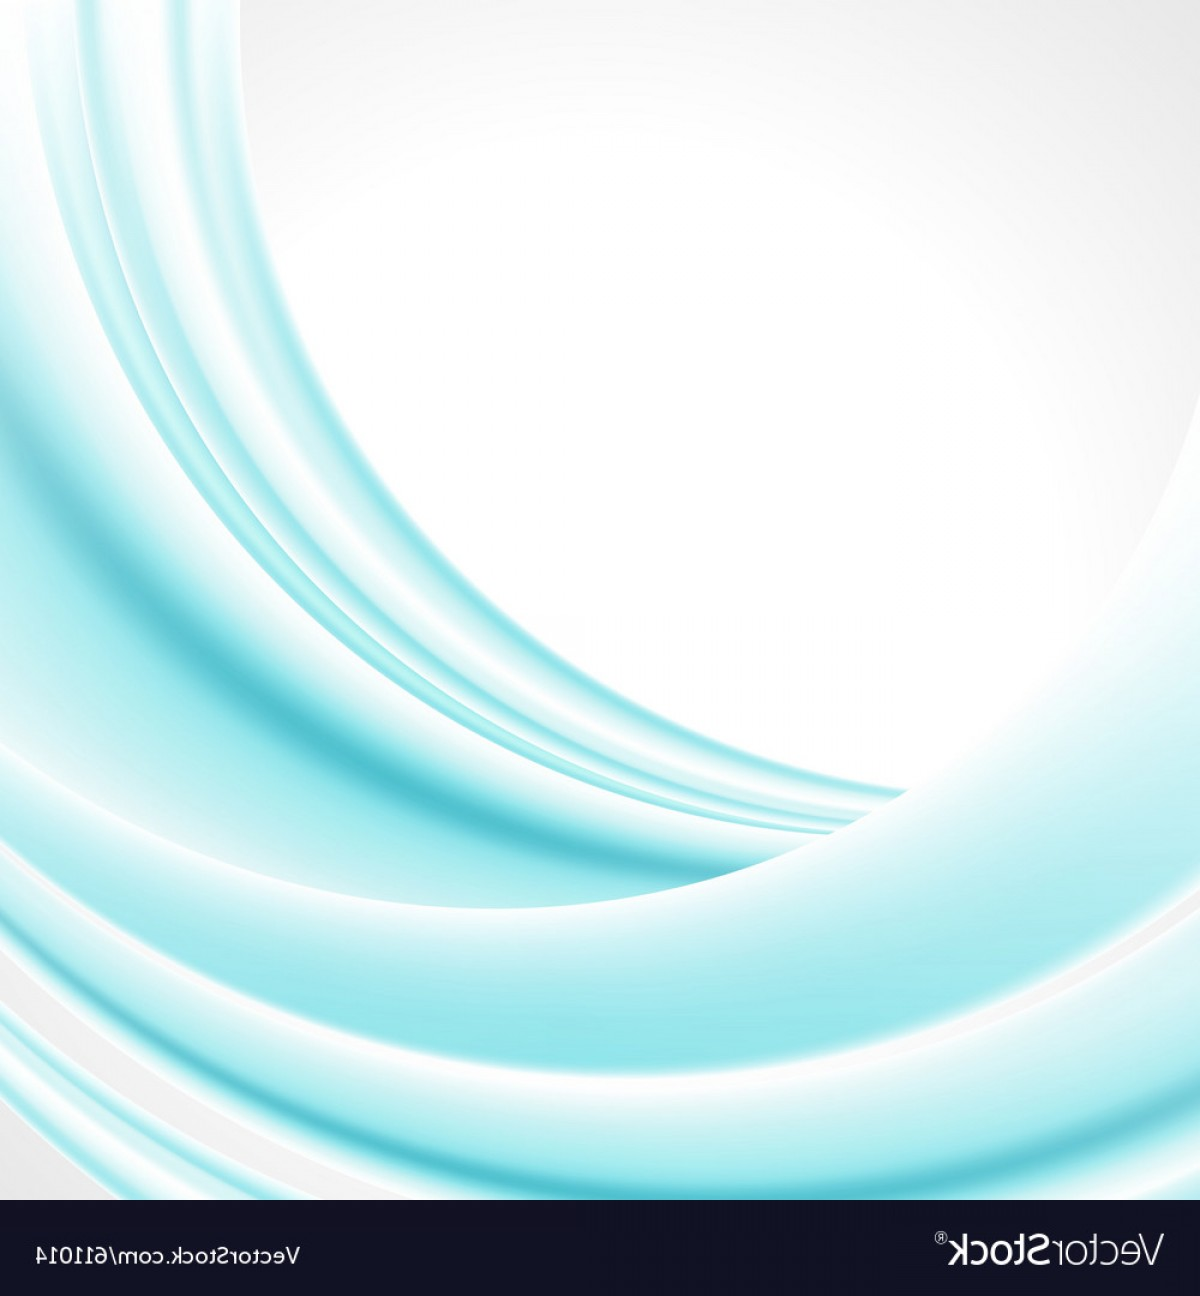 Backgroung Vector: Abstract Smooth Light Lines Background Vector